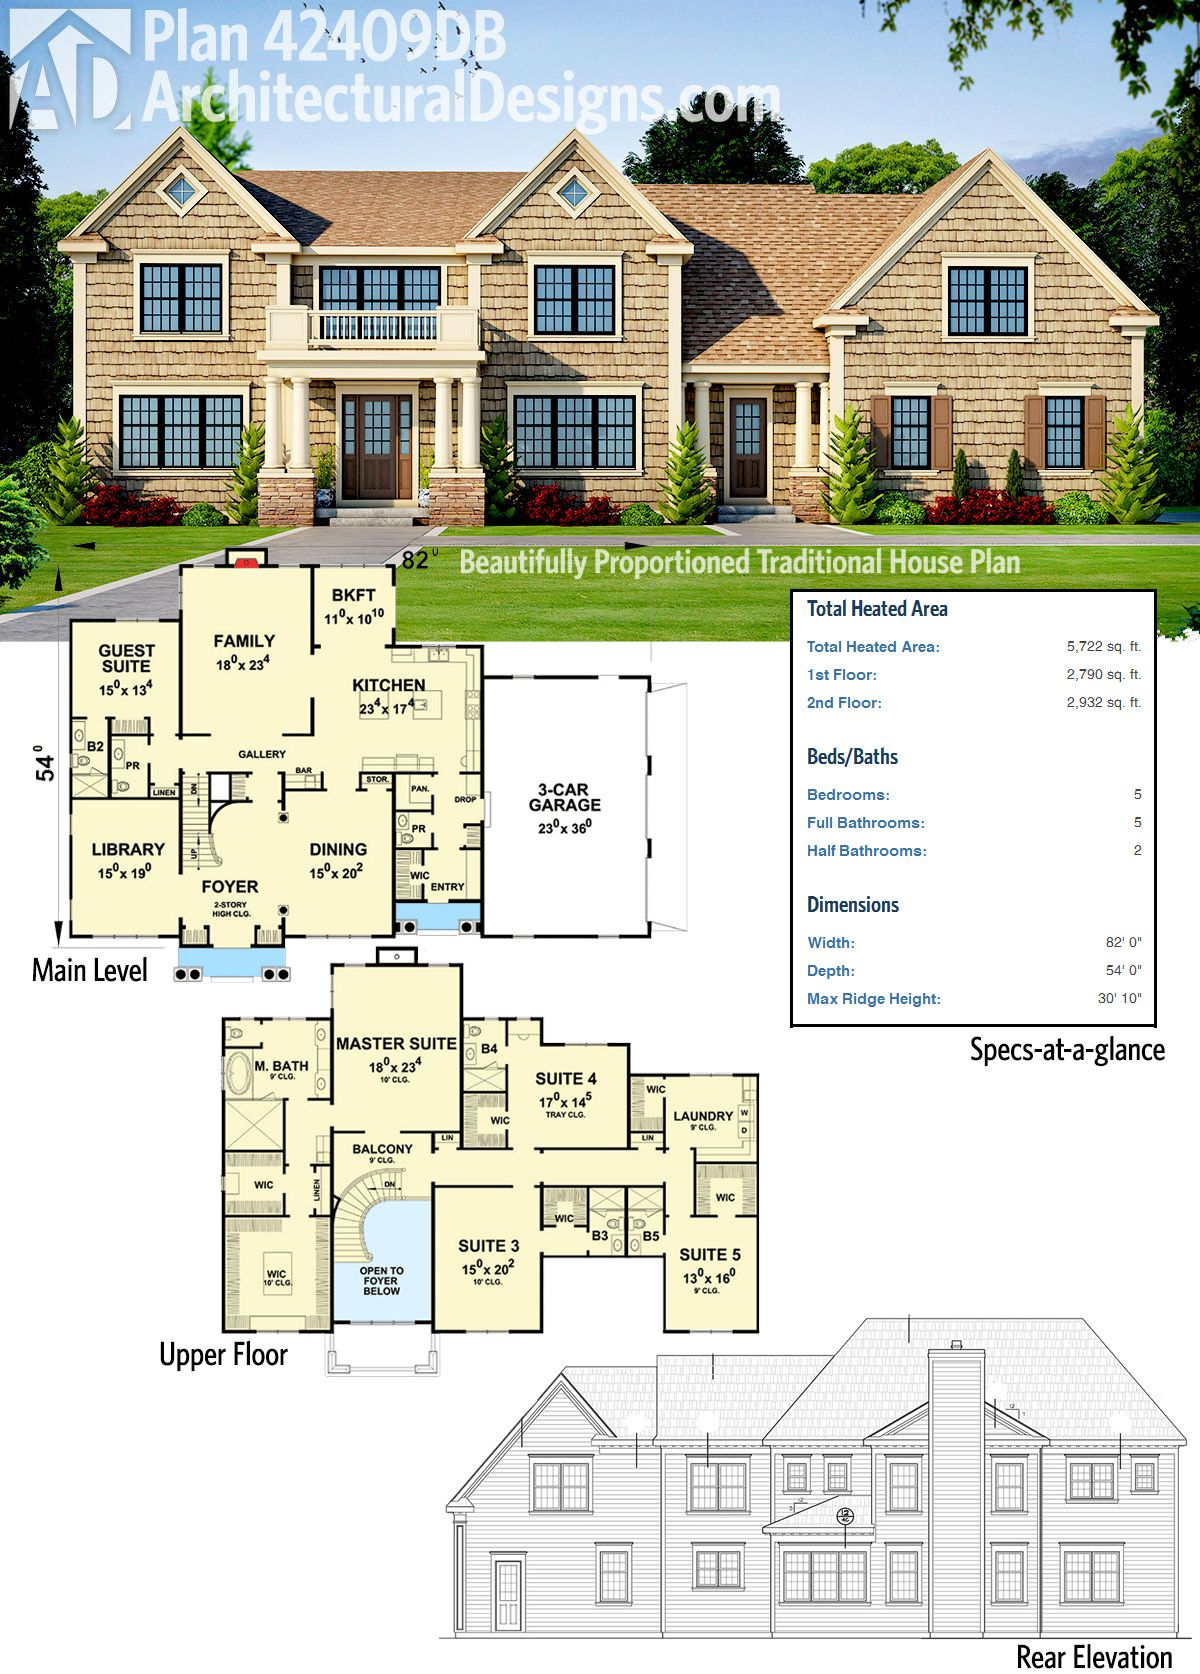 Plan 42409db Beautifully Proportioned Traditional House Plan Luxury House Plans Traditional House Plan House Plans